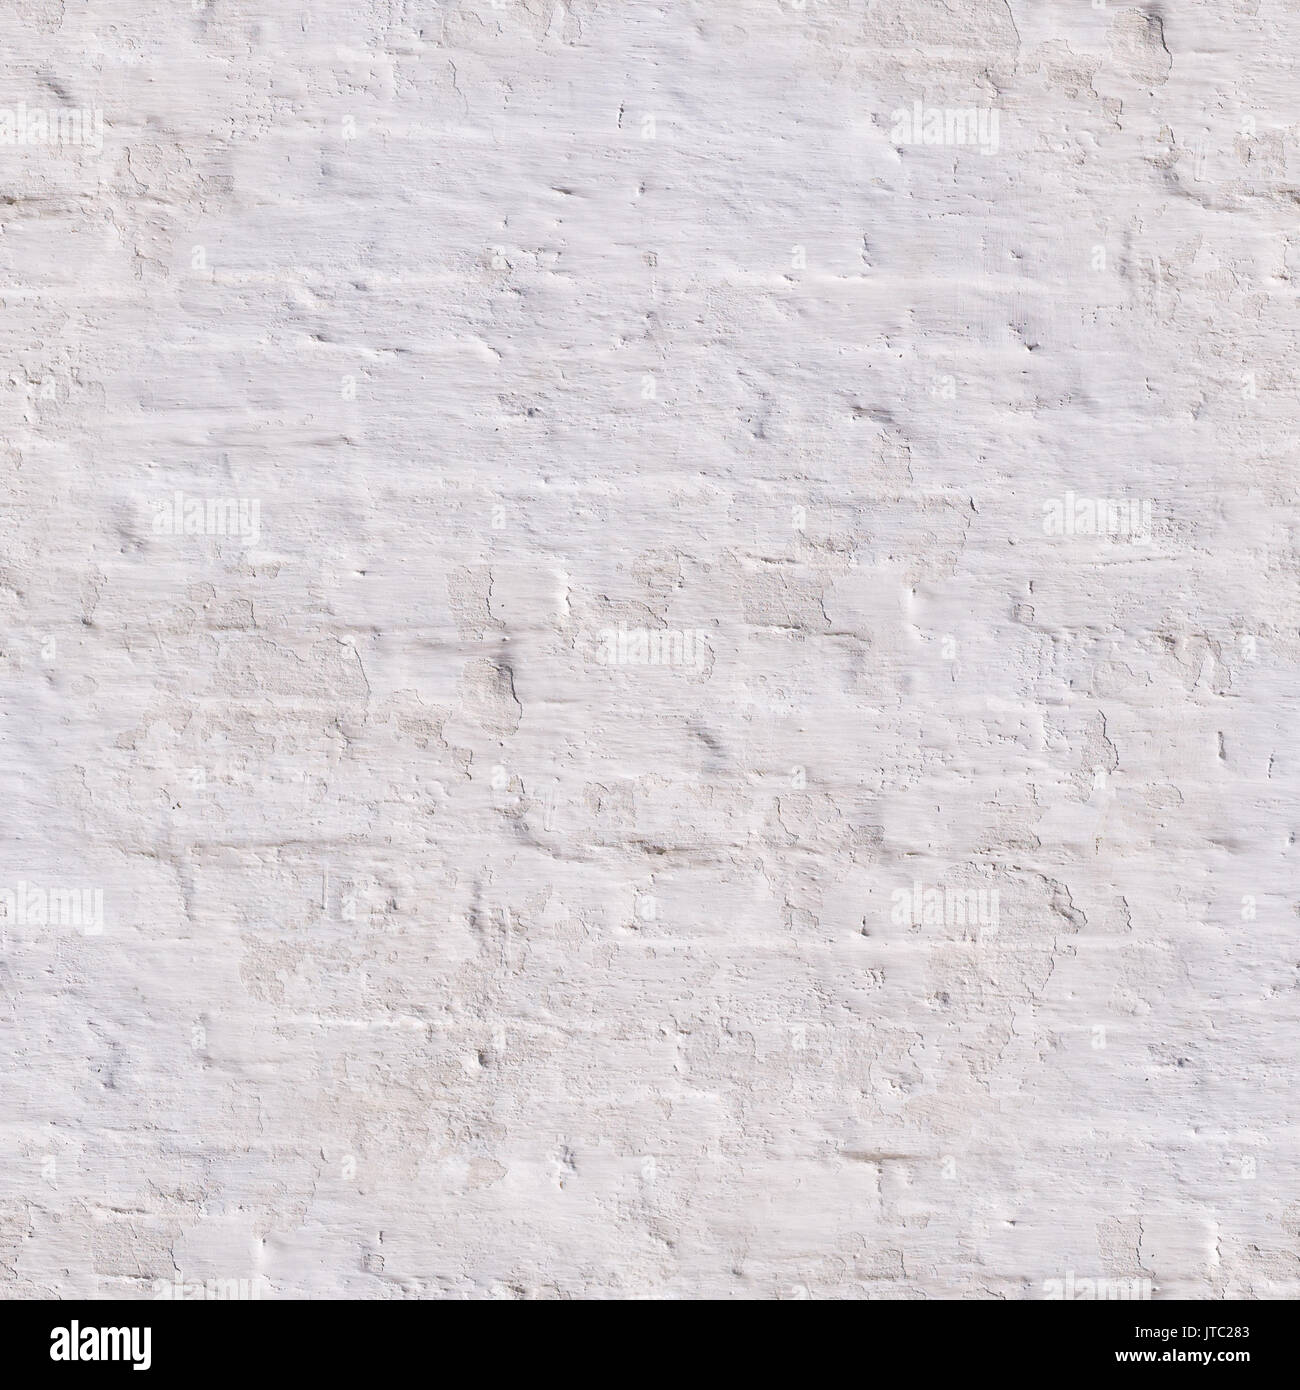 white plaster seamless texture background stockfotos white plaster seamless texture background. Black Bedroom Furniture Sets. Home Design Ideas